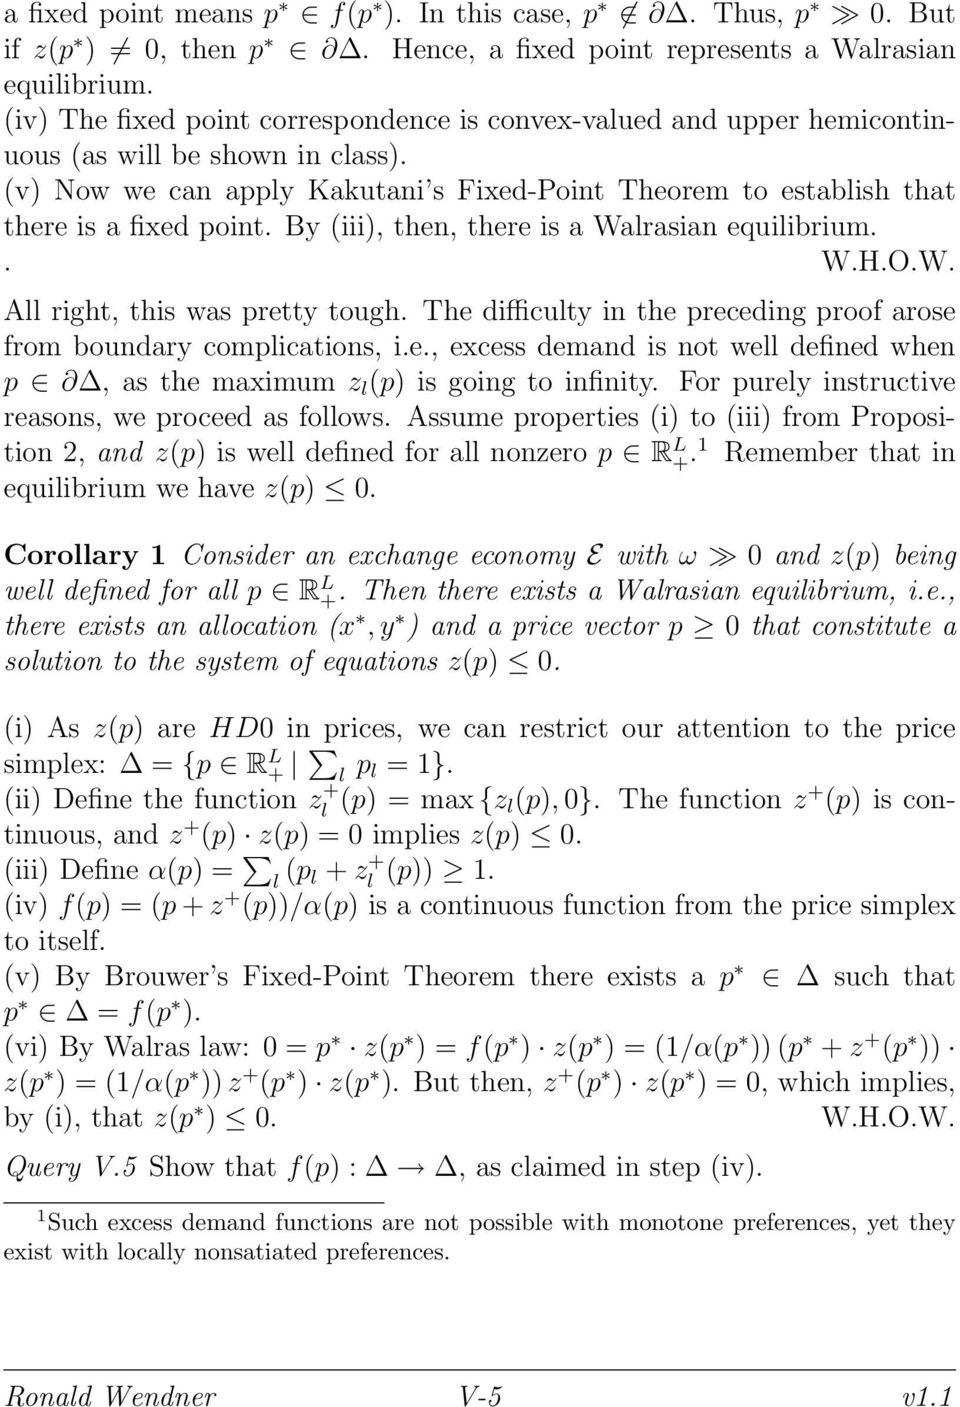 By (iii), then, there is a Walrasian equilibrium.. W.H.O.W. All right, this was pretty tough. The difficulty in the preceding proof arose from boundary complications, i.e., excess demand is not well defined when p, as the maximum z l (p) is going to infinity.